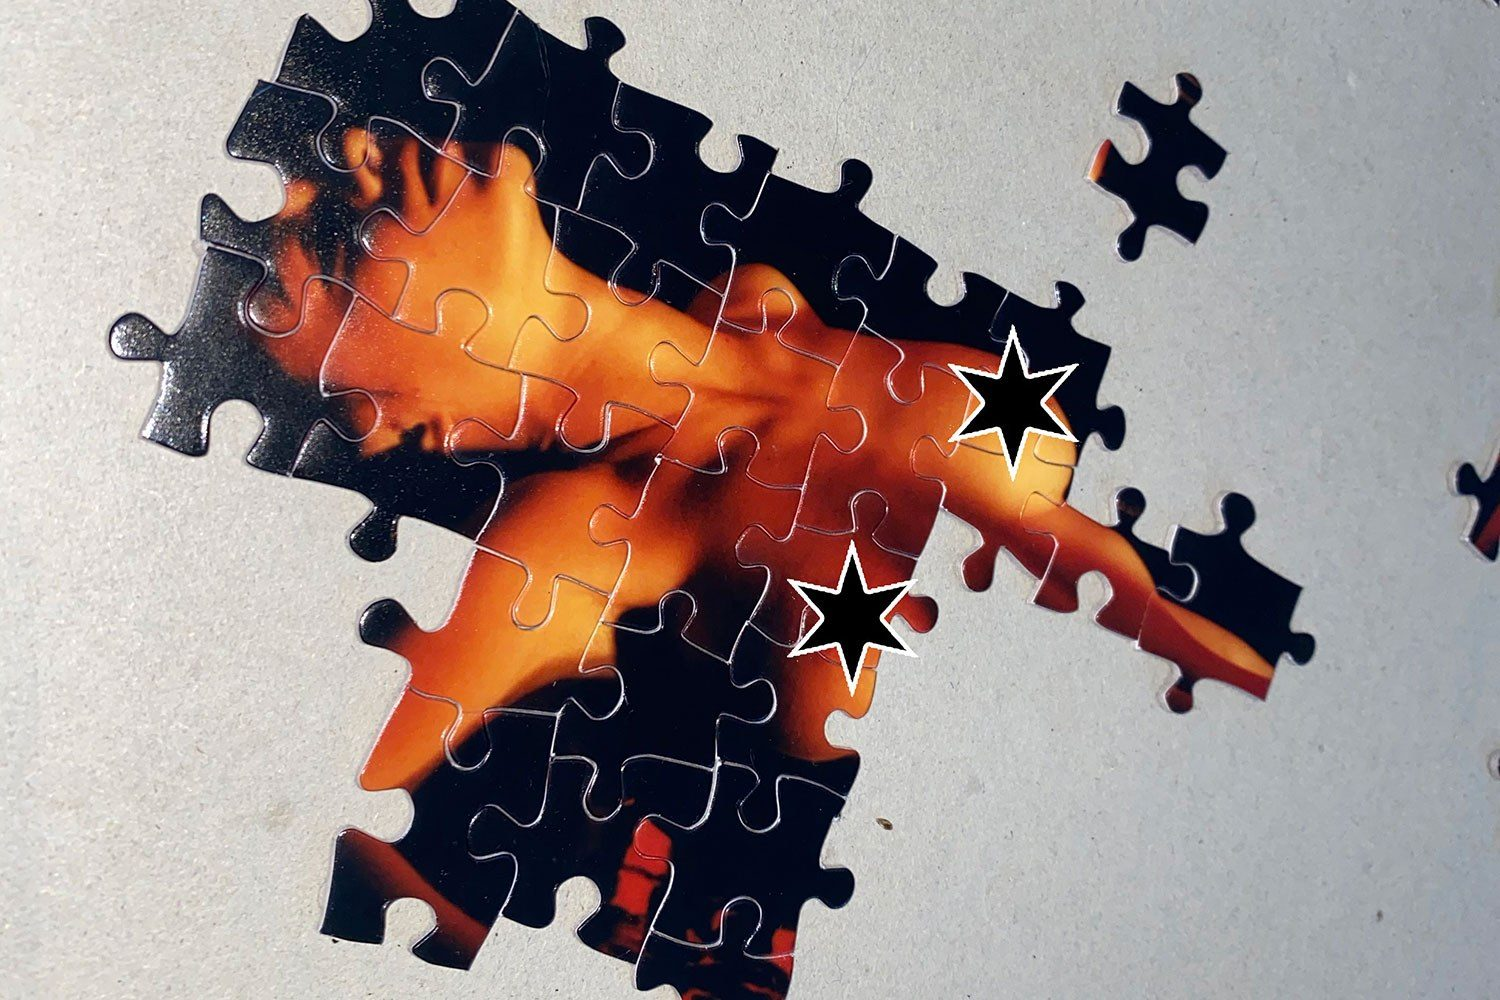 These New Puritans have released some jigsaw puzzles to raise money for charity